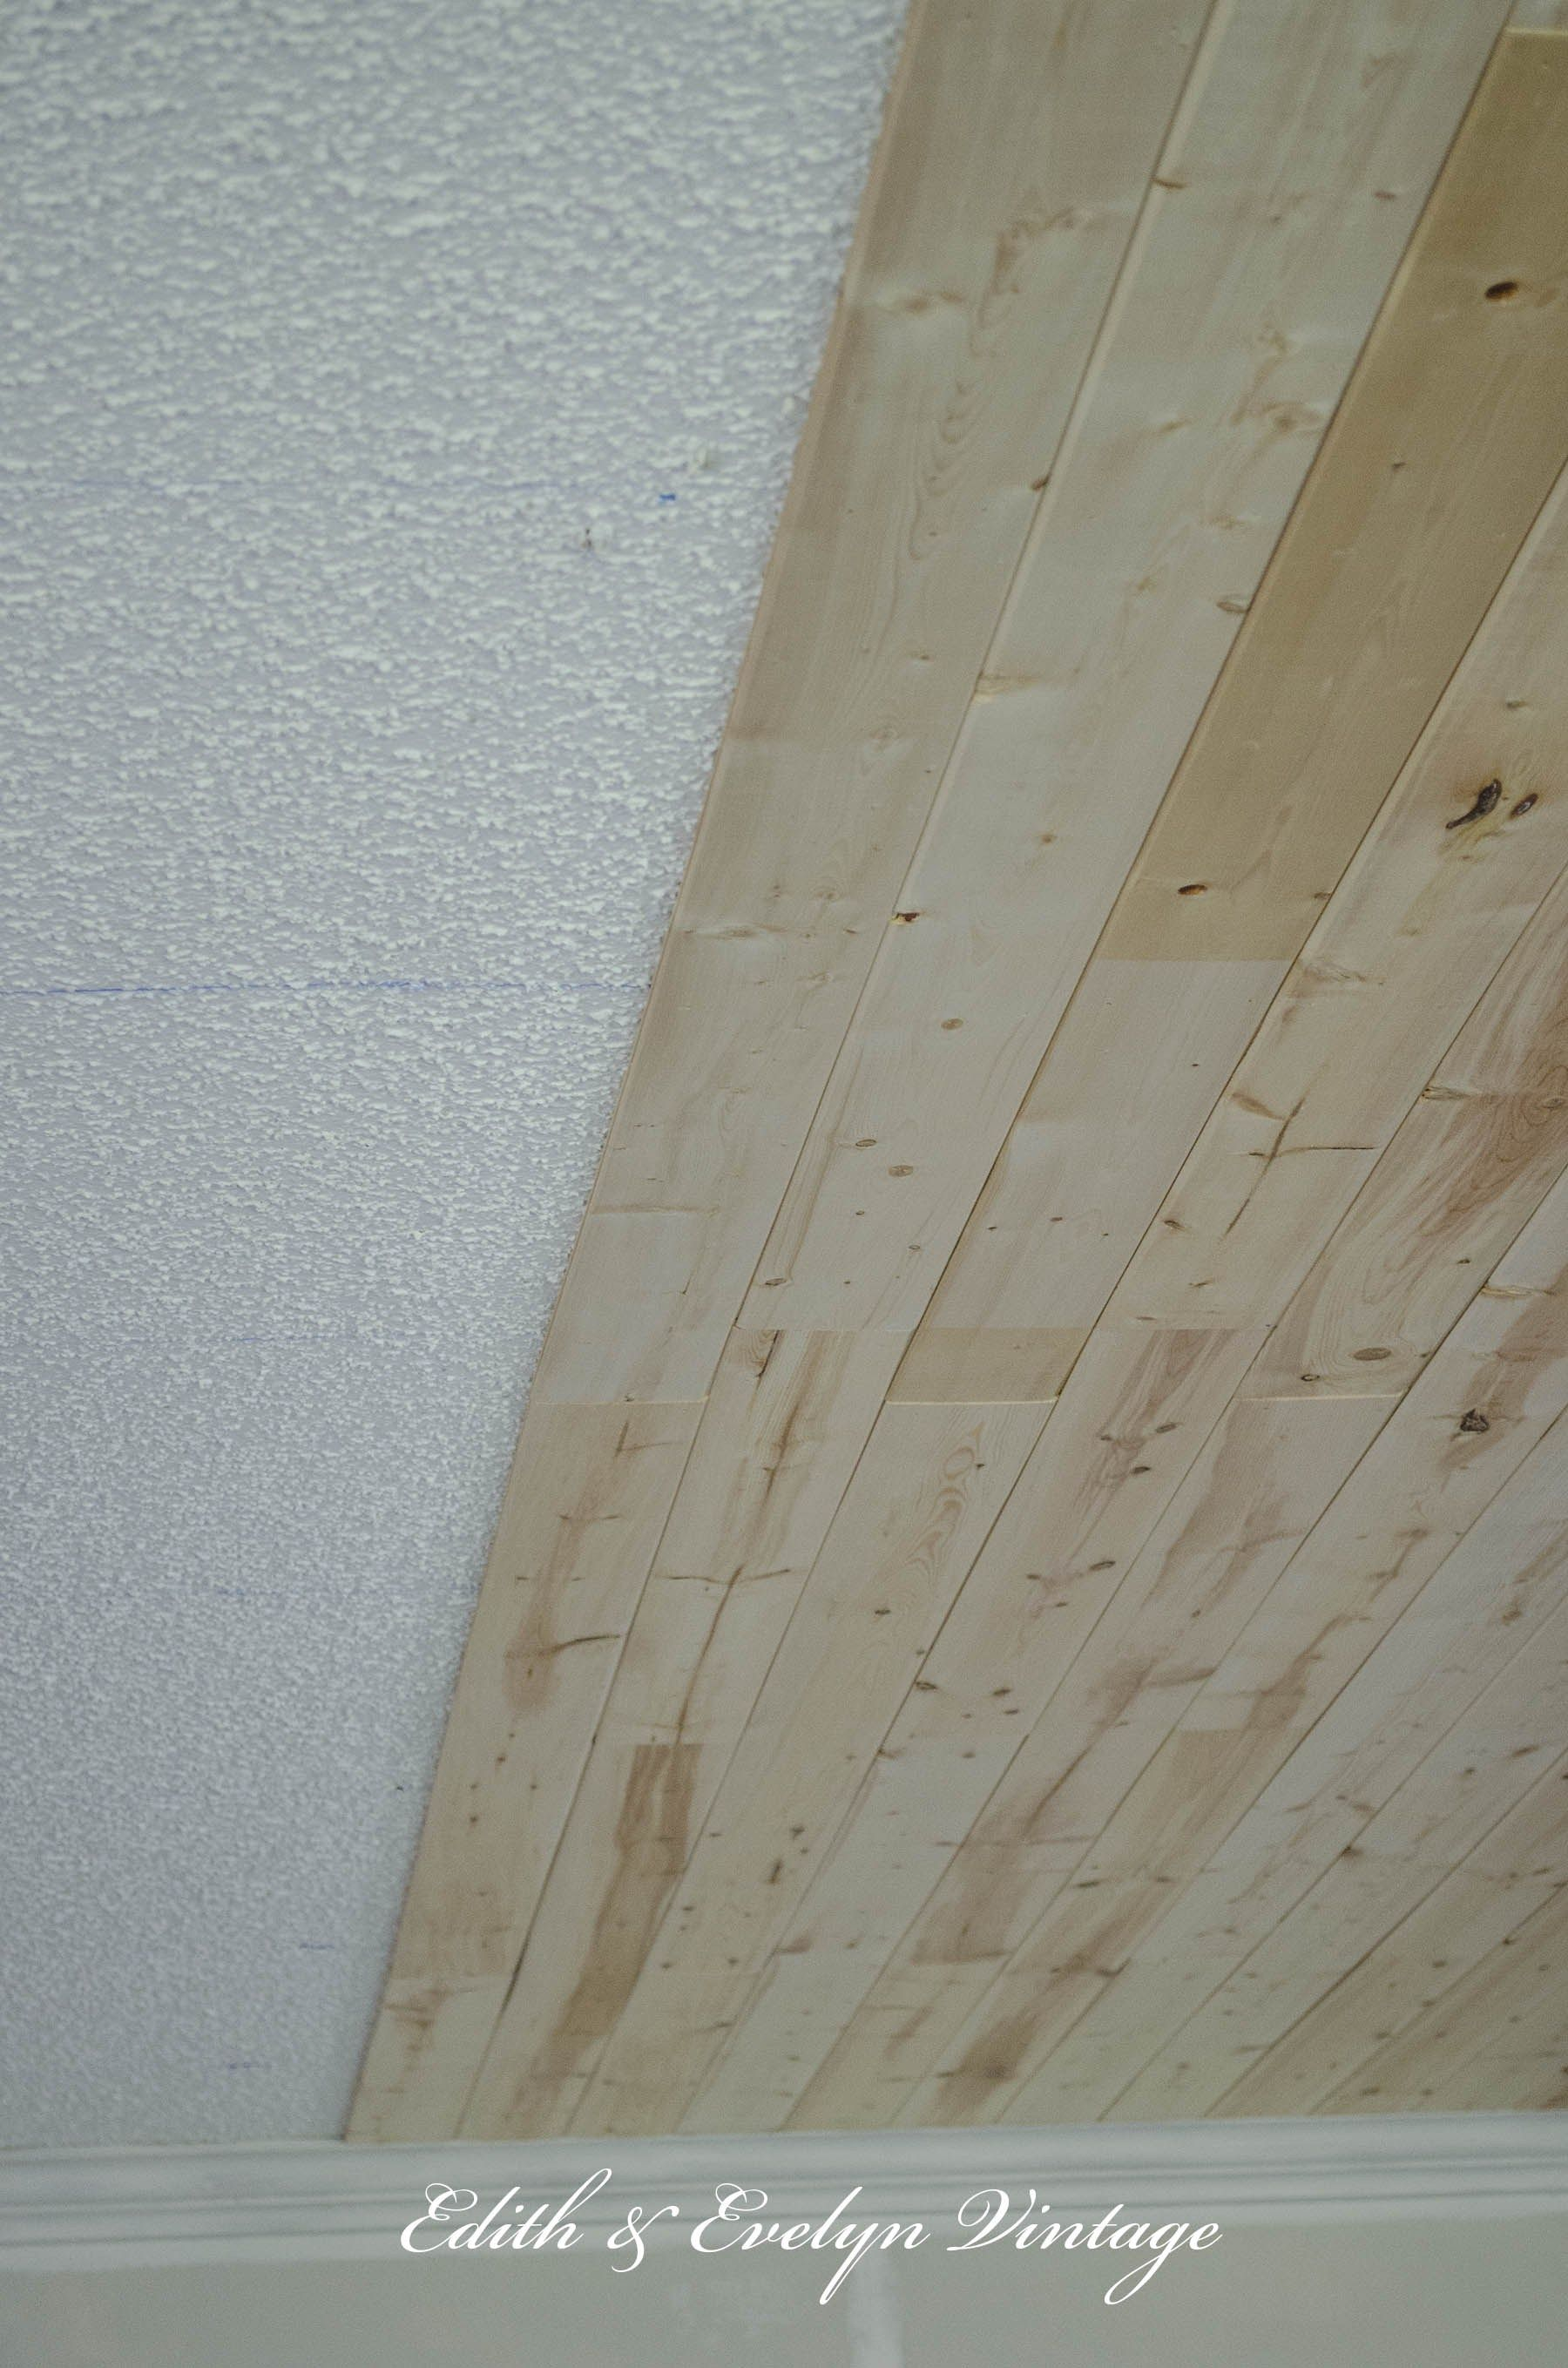 How to diy plank over a popcorn ceiling for less than 300 for how to diy plank over a popcorn ceiling for less than 300 doublecrazyfo Choice Image